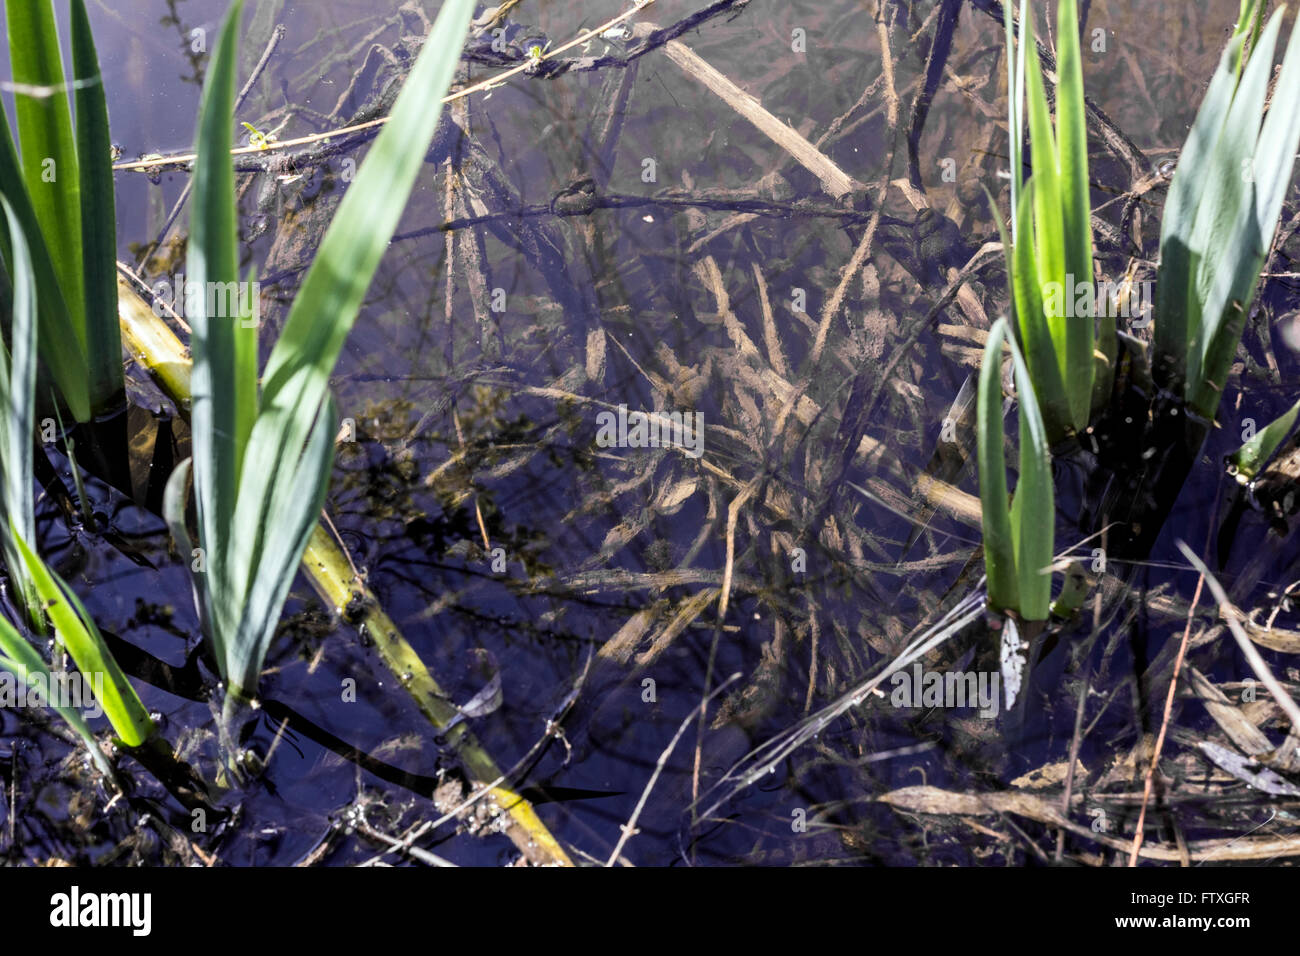 Grass roots under water in sunlight weather - Stock Image